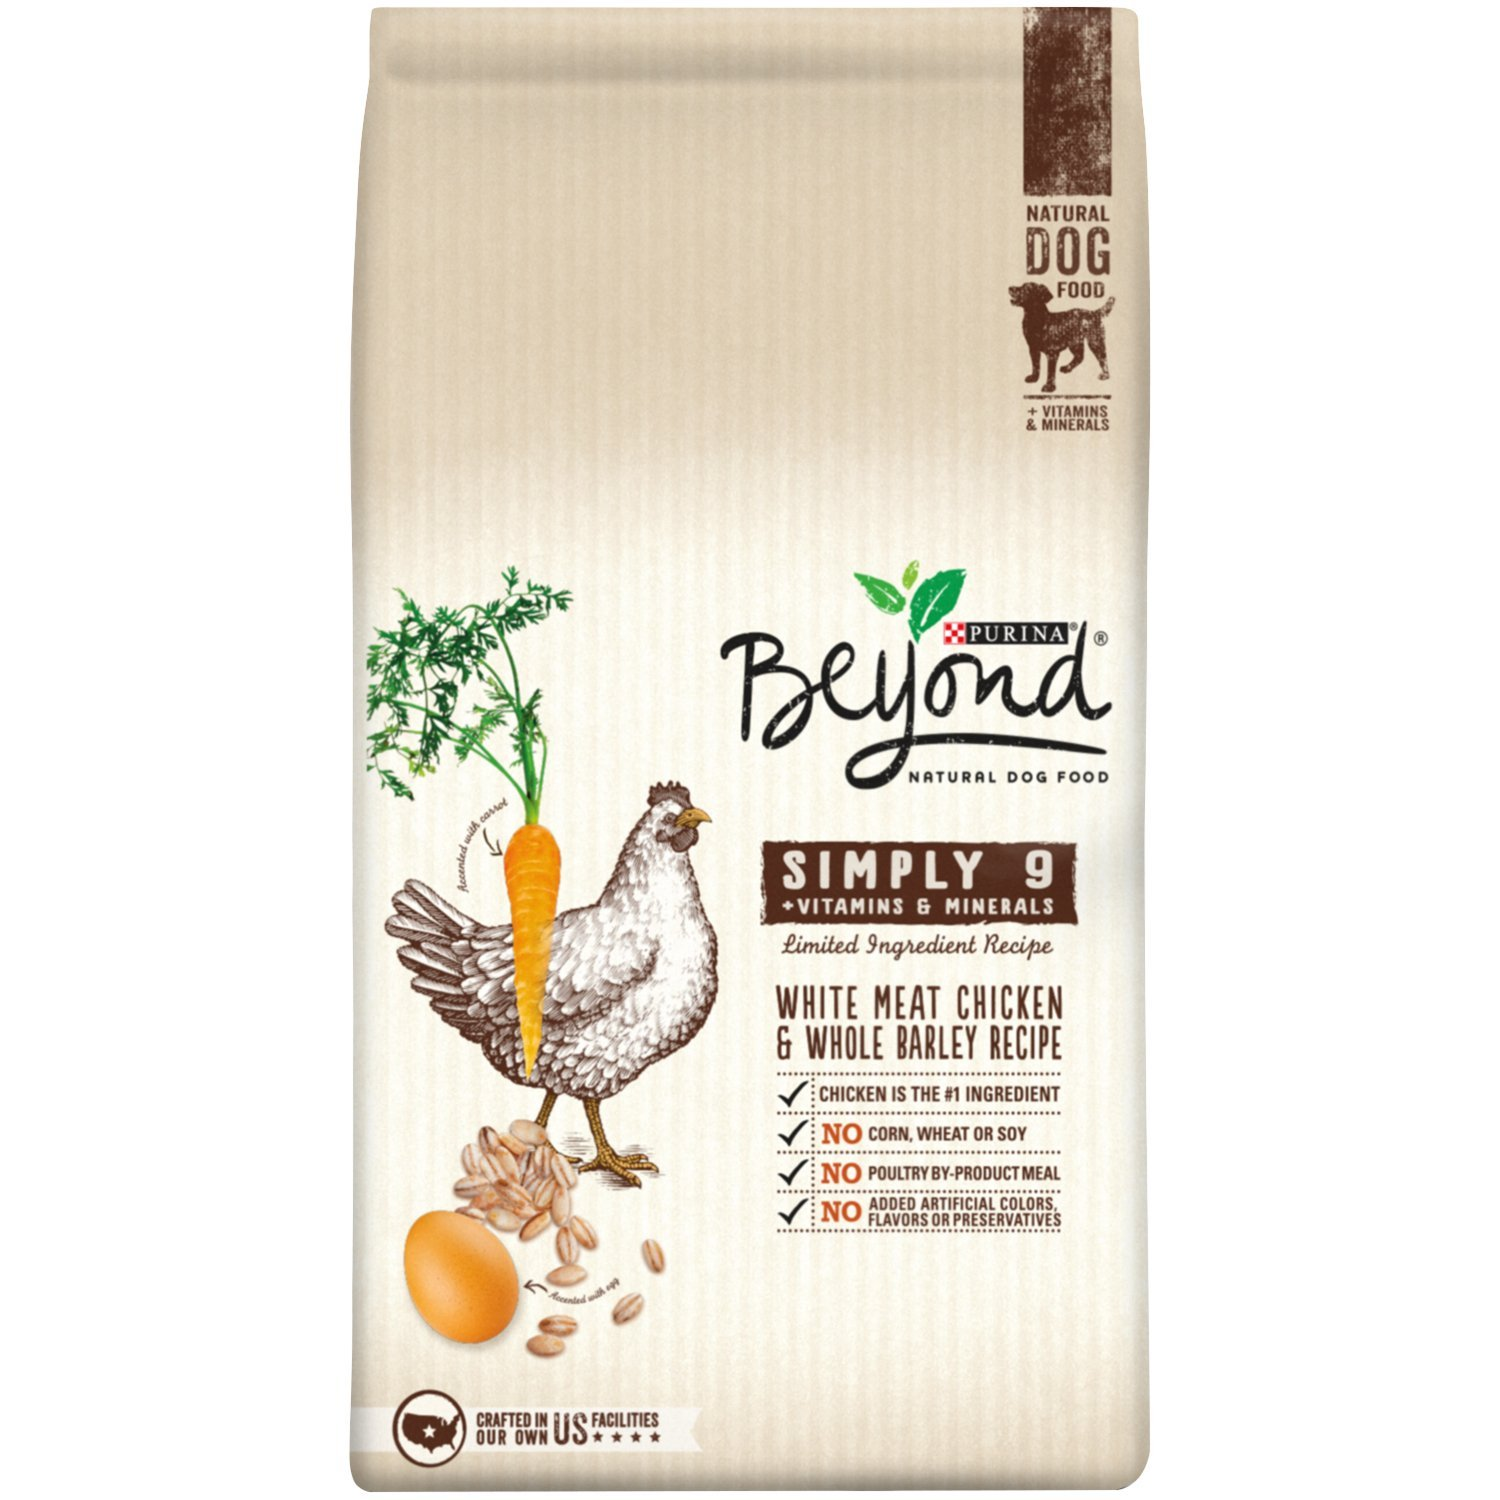 Get Purina Beyond Dry Dog Food for FREE + $3.56 profit!